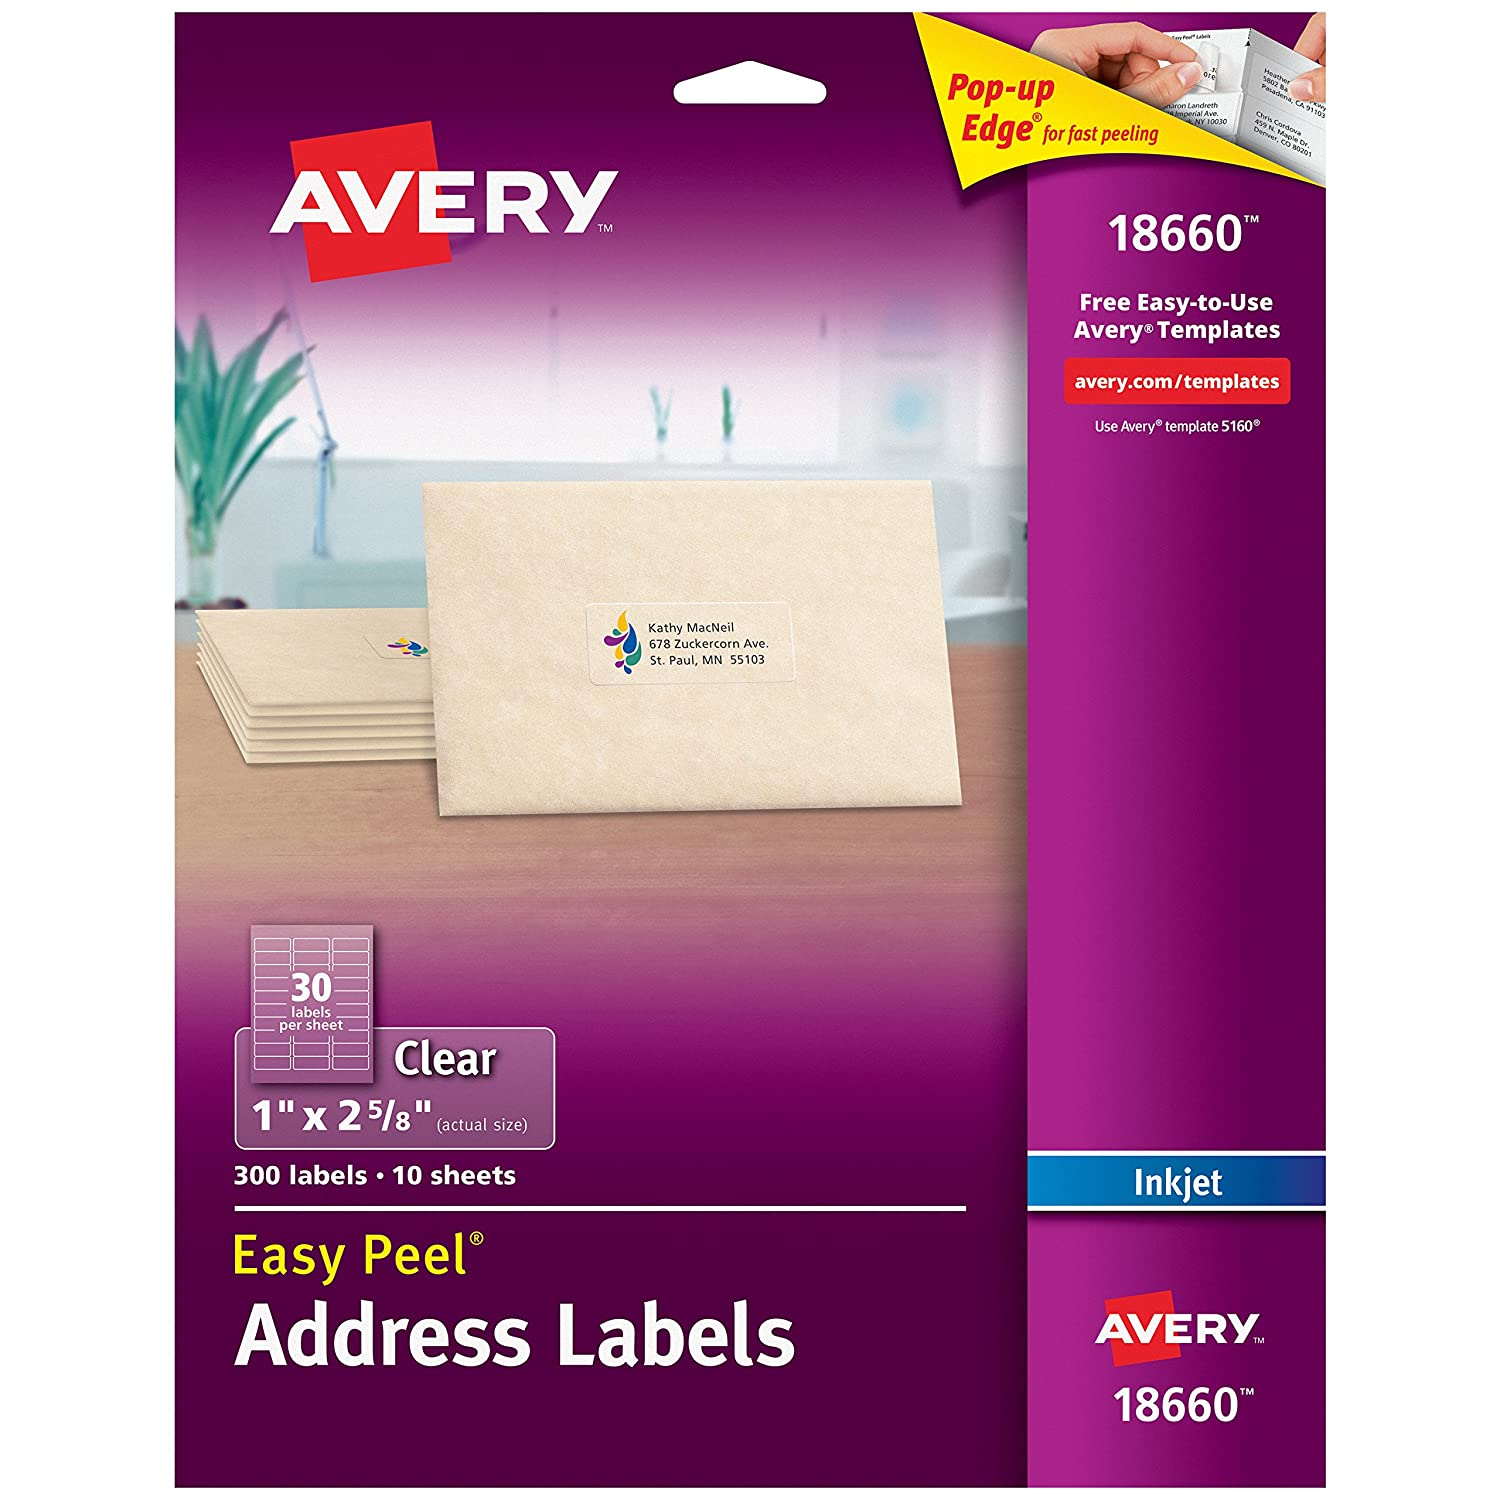 Avery matte frosted clear address labels for inkjet printers 1 x 2 5 8 300 labels 18660